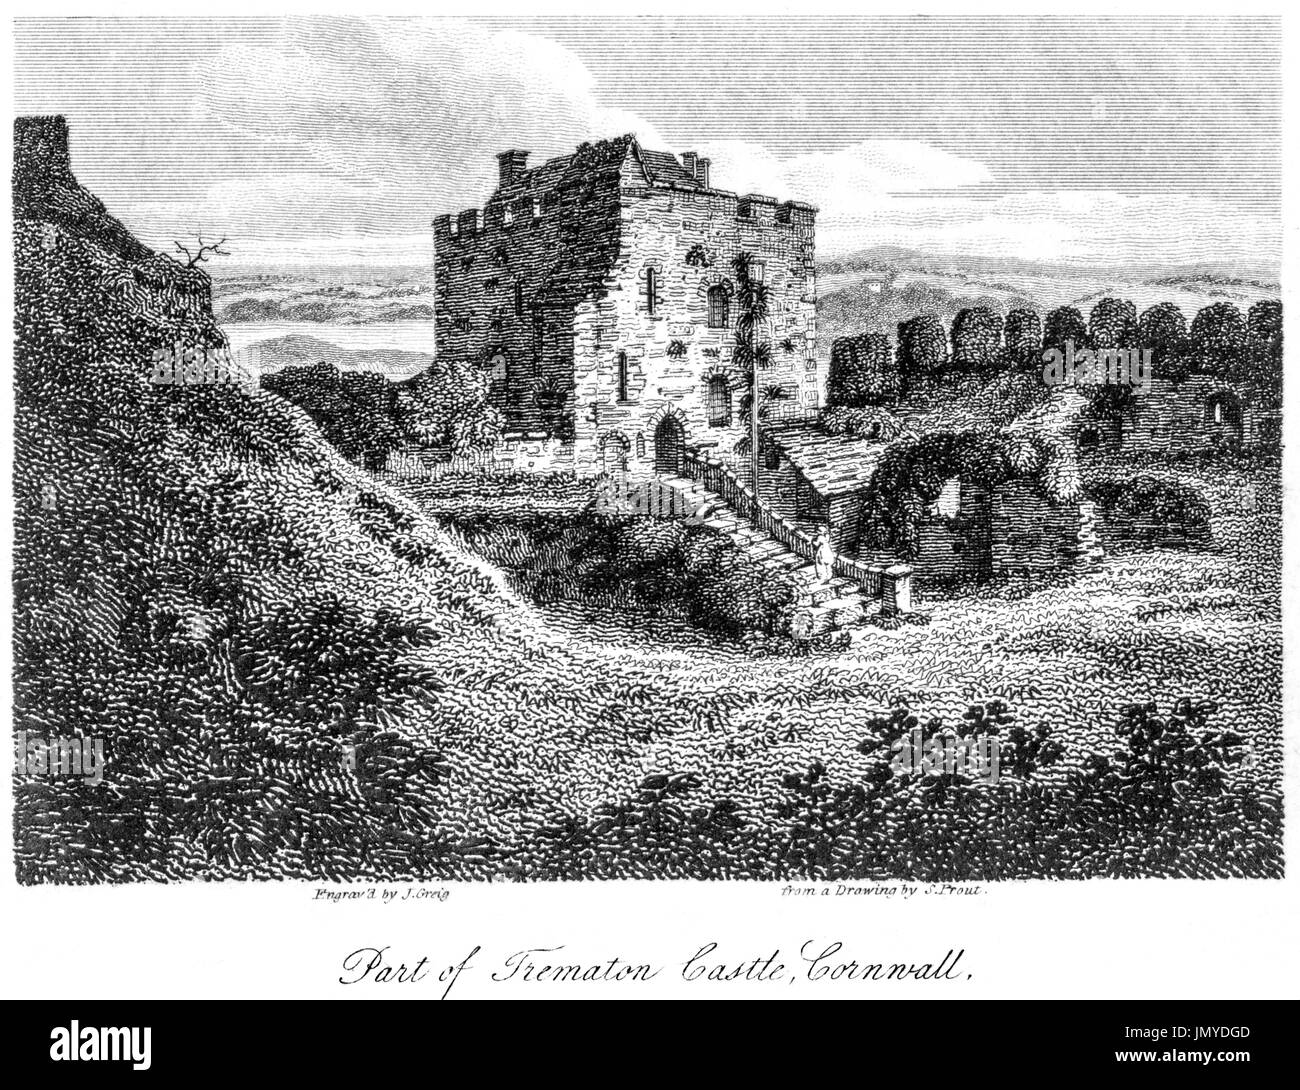 An engraving of Part of Trematon Castle, Cornwall scanned at high resolution from a book printed in 1808. Believed copyright free. - Stock Image